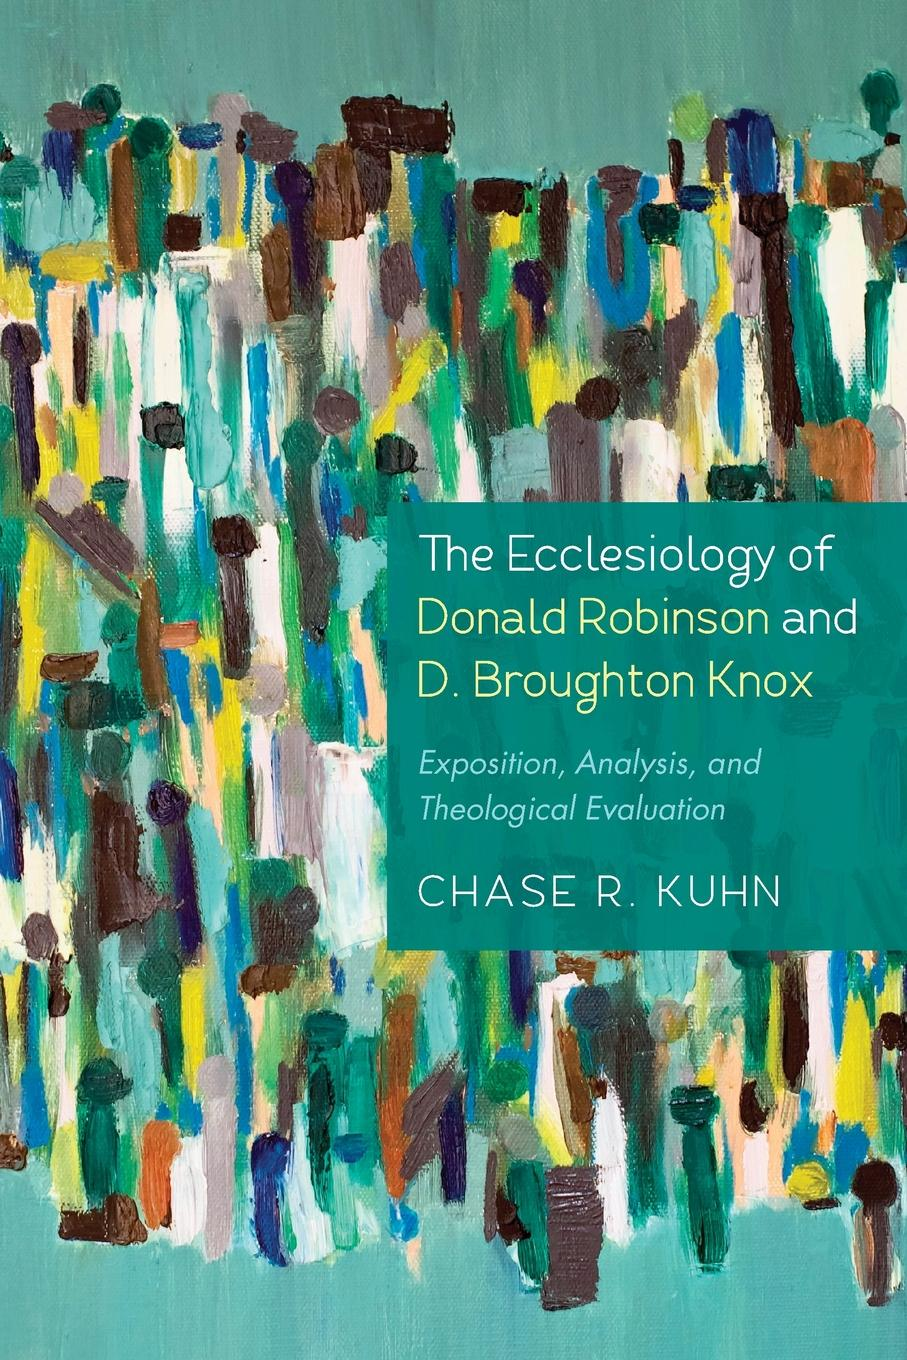 Chase R Kuhn The Ecclesiology of Donald Robinson and D. Broughton Knox. Exposition, Analysis, and Theological Evaluation towards an african ecclesiology in stones